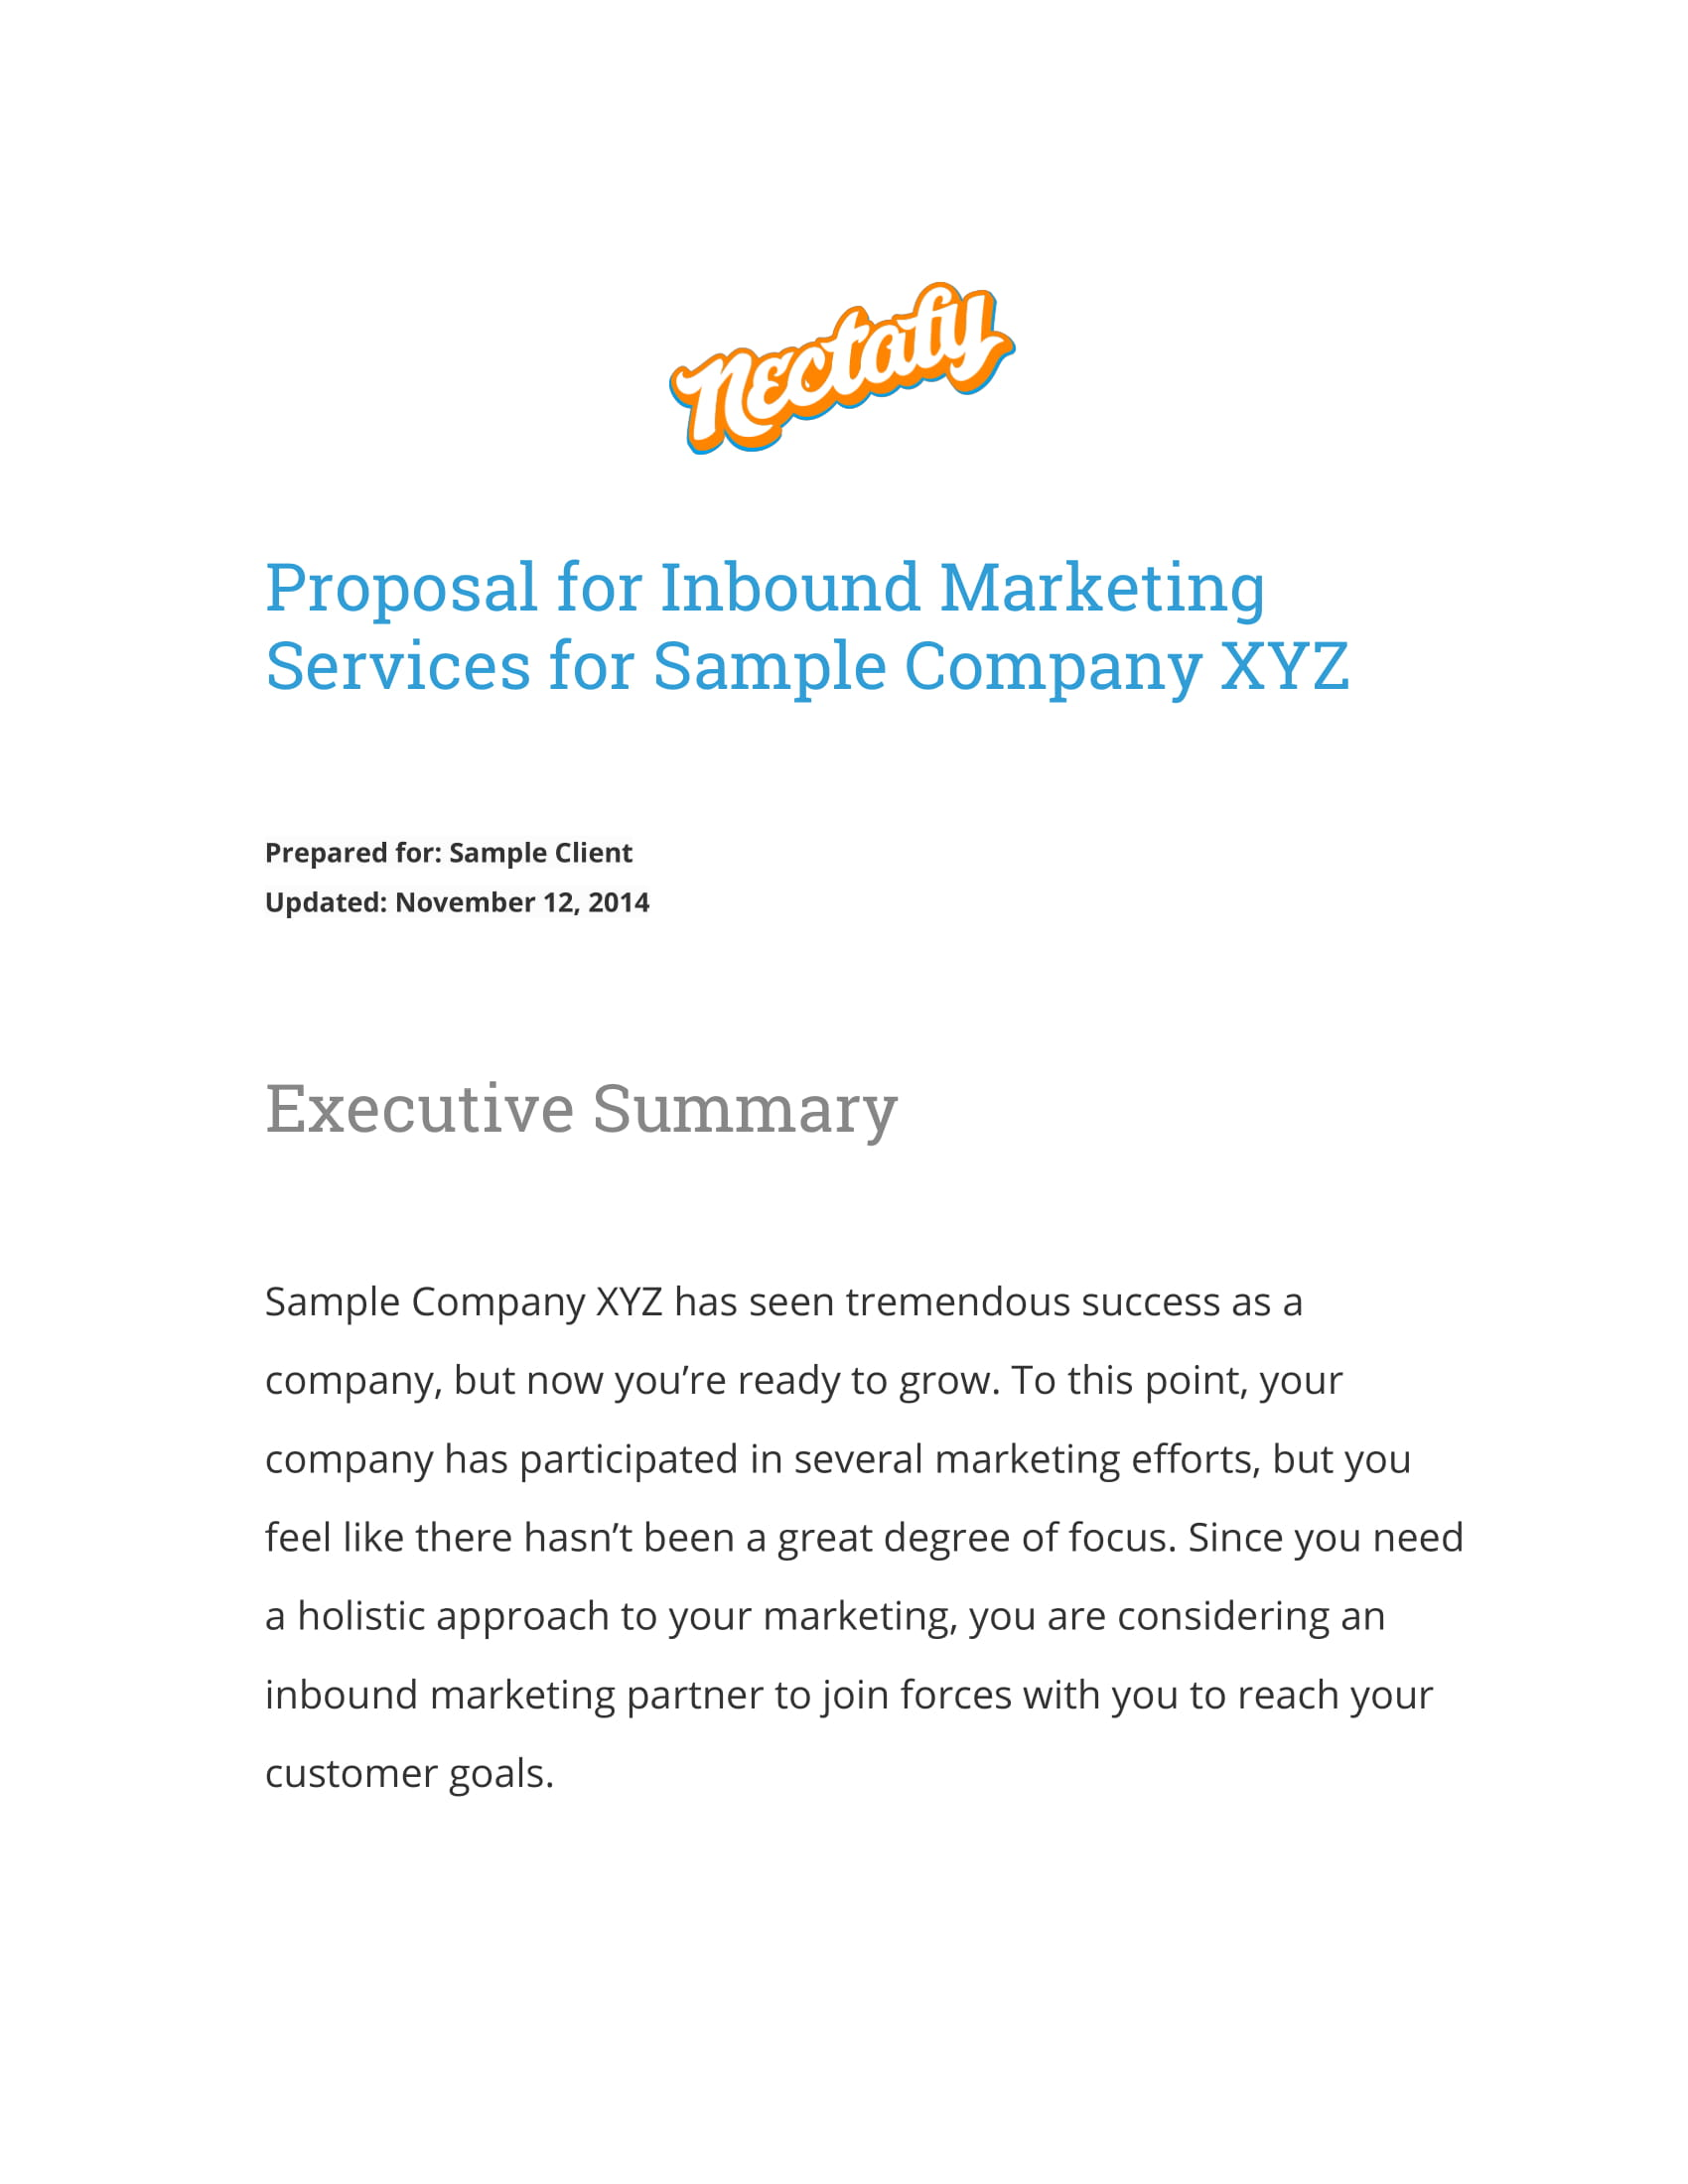 inbound marketing campaign proposal example